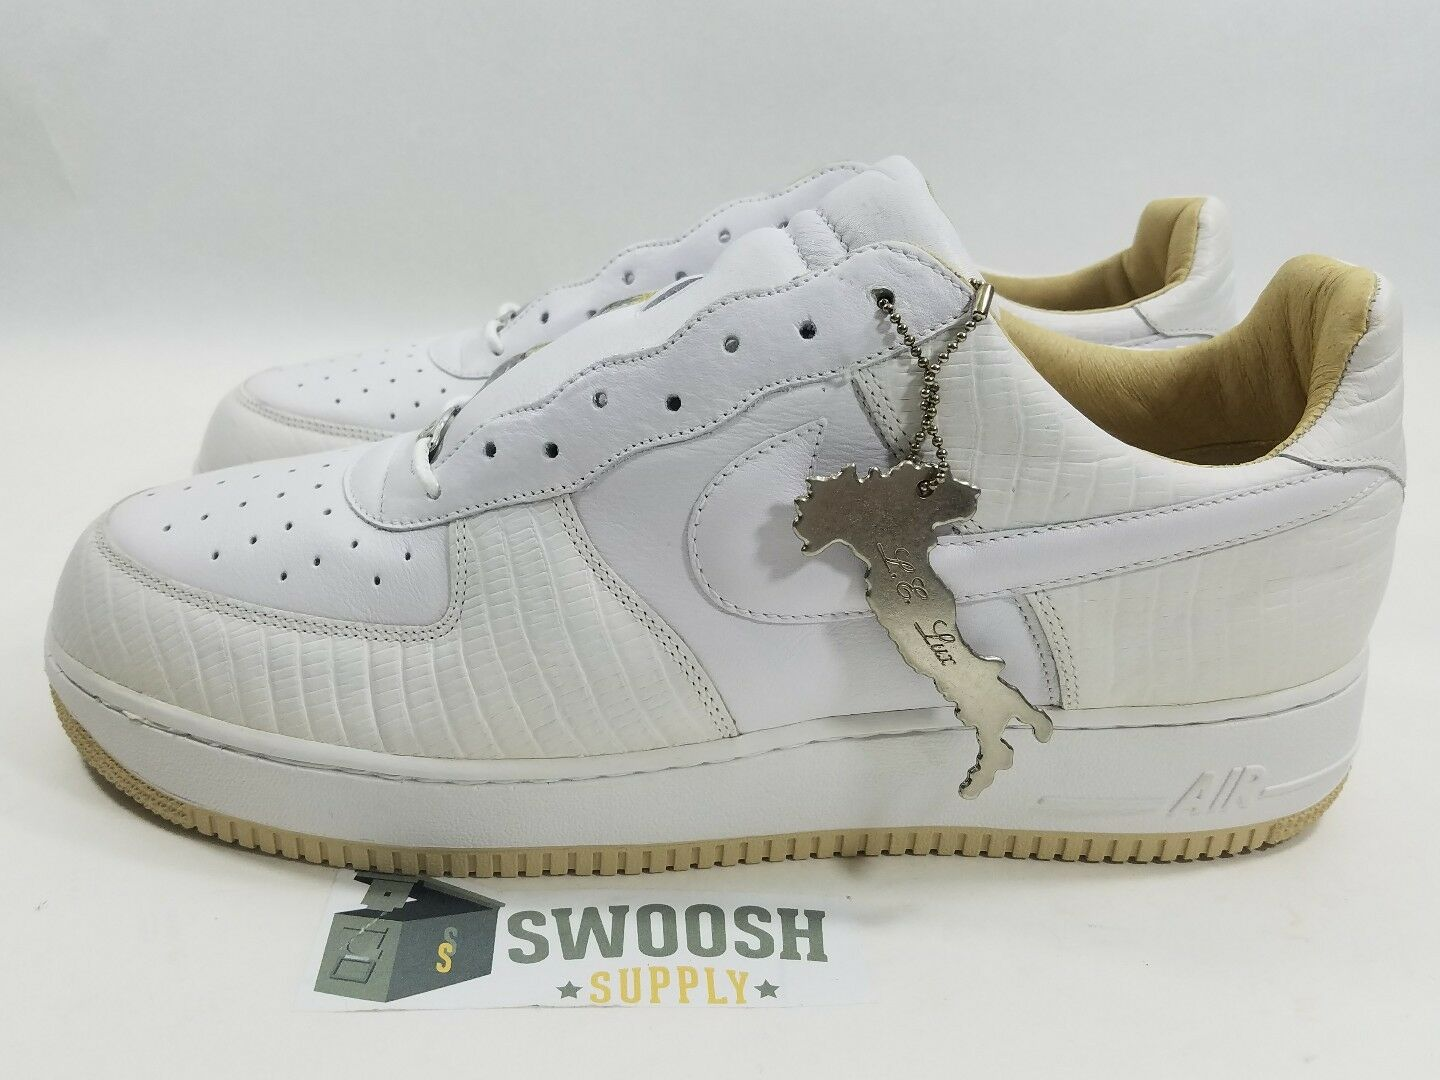 NIKE AIR FORCE 1 LUX ITALIAN LEATHER WHITE WHITE STRAW 310276 111 SIZE 12